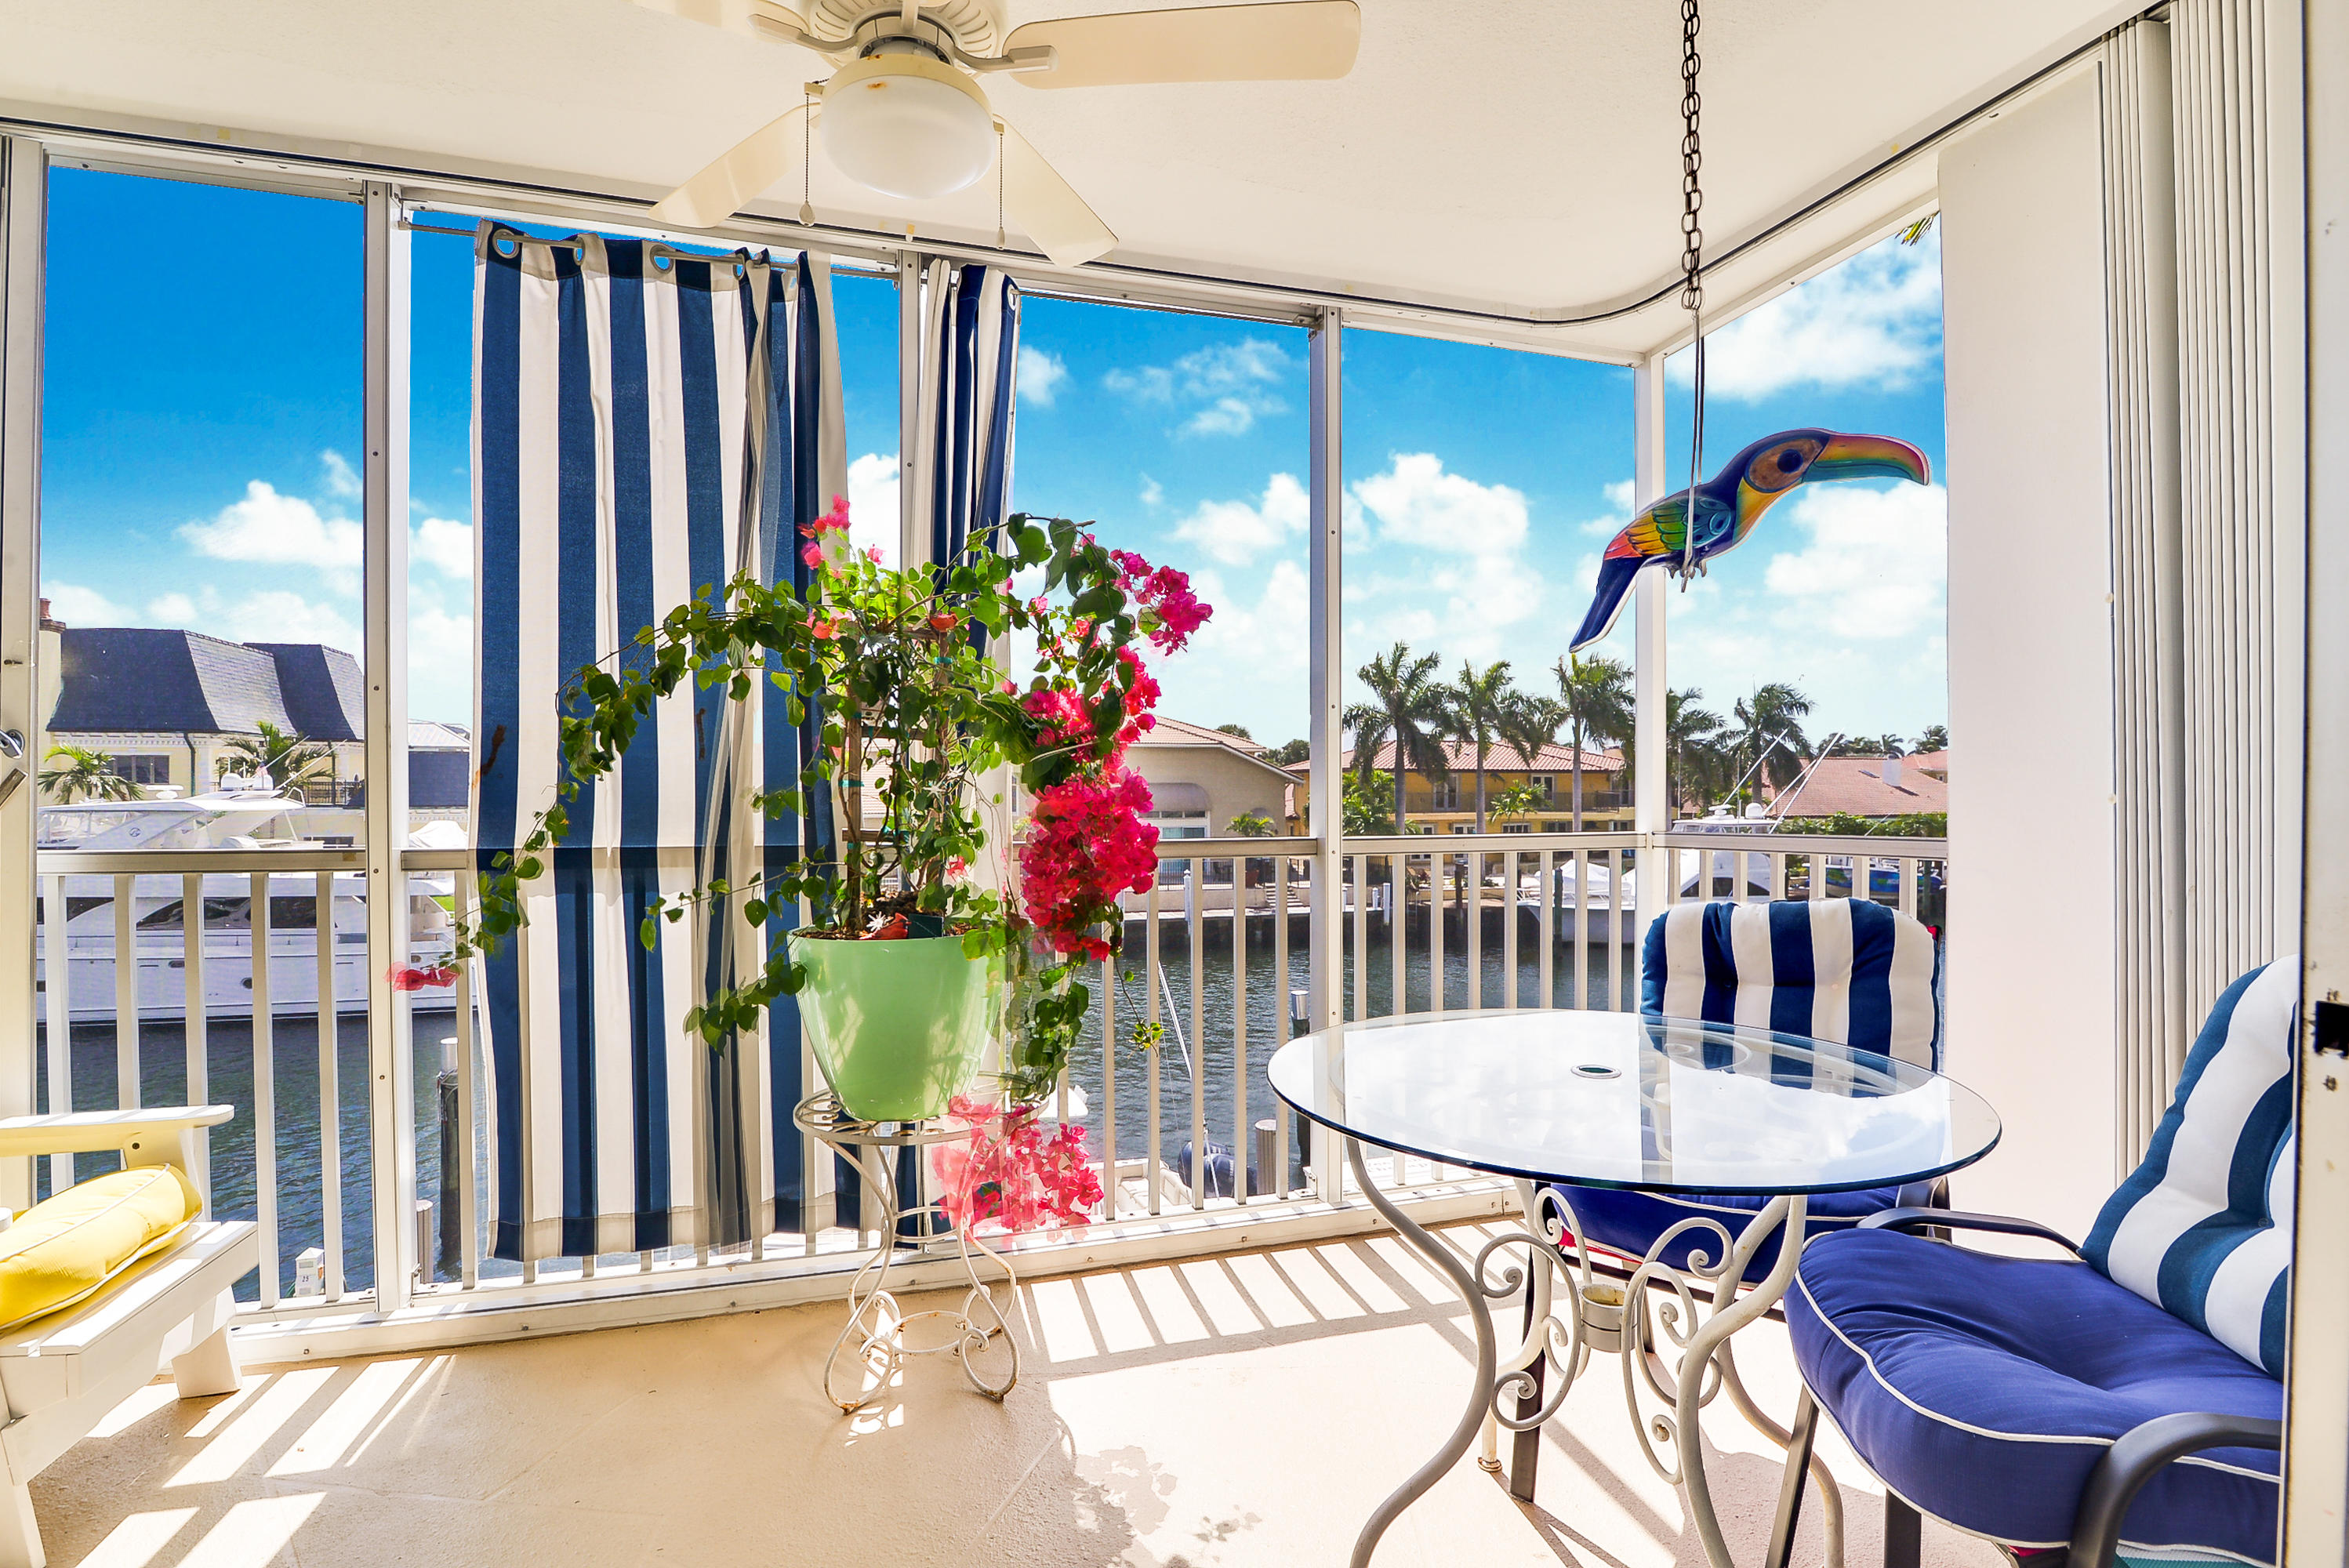 Home for sale in Palm Aire Lighthouse Point Florida